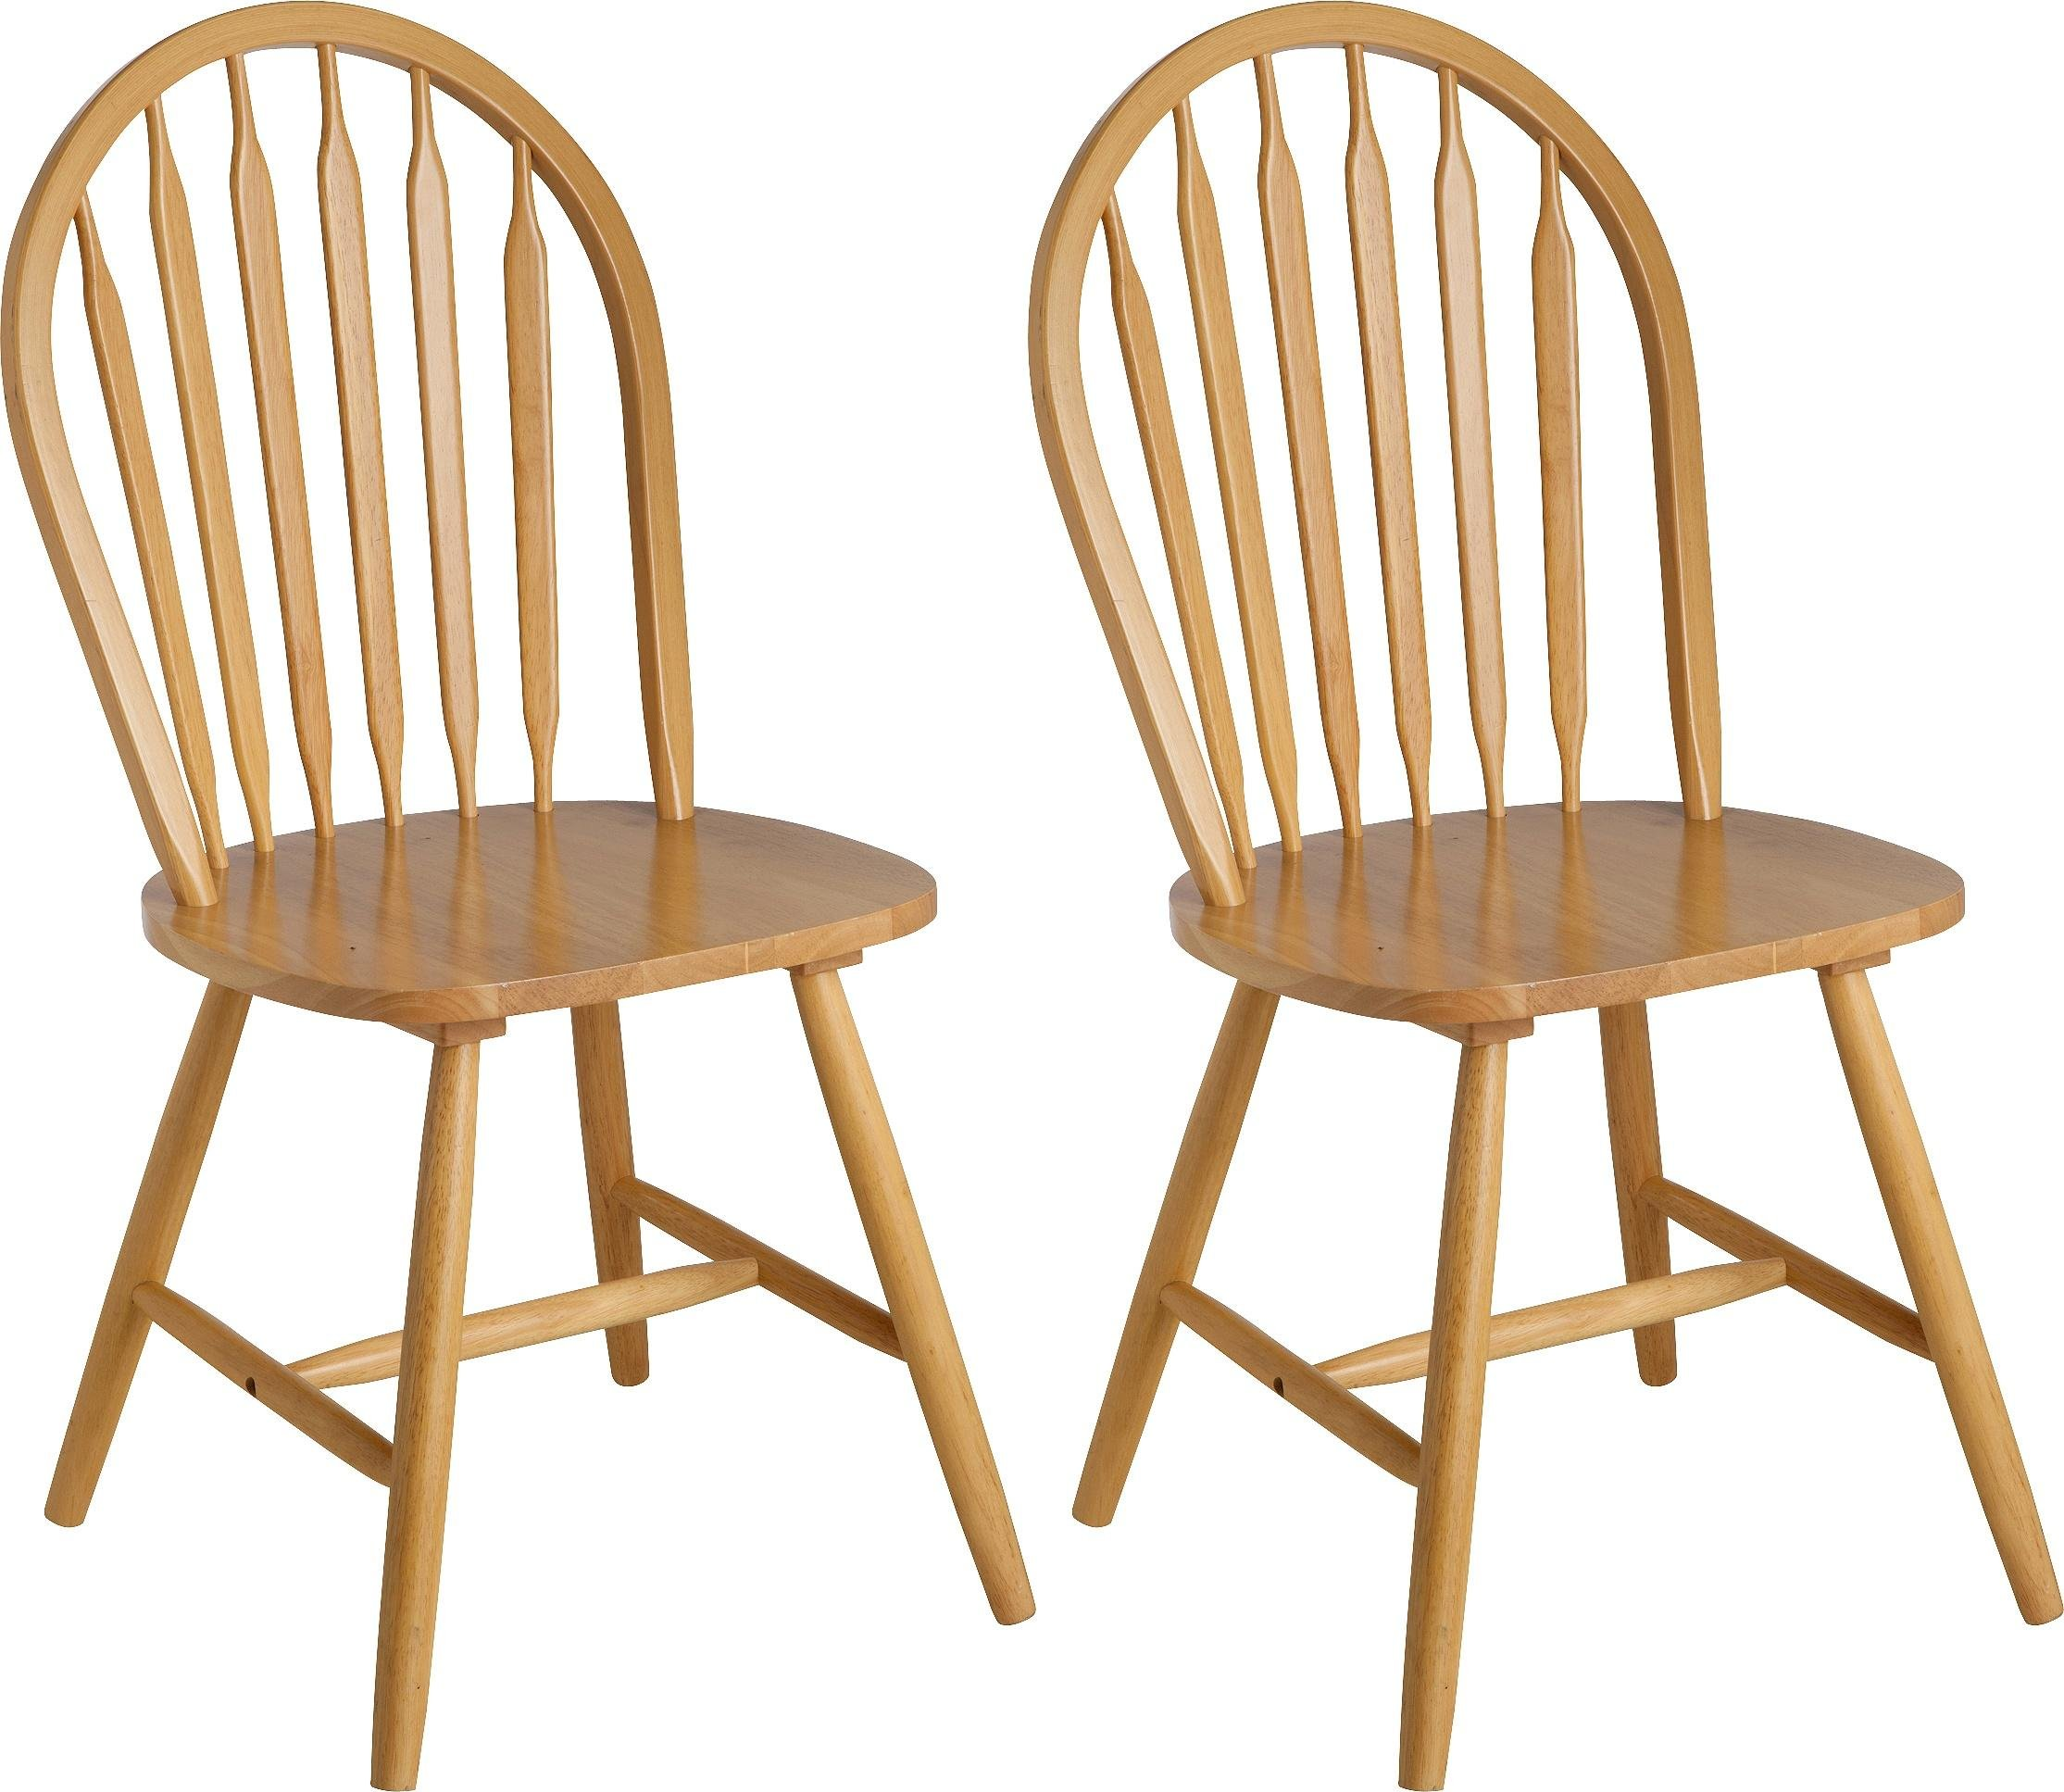 wooden kitchen chairs argos queen anne chair recliner sale on collection kentucky pair of solid wood dining